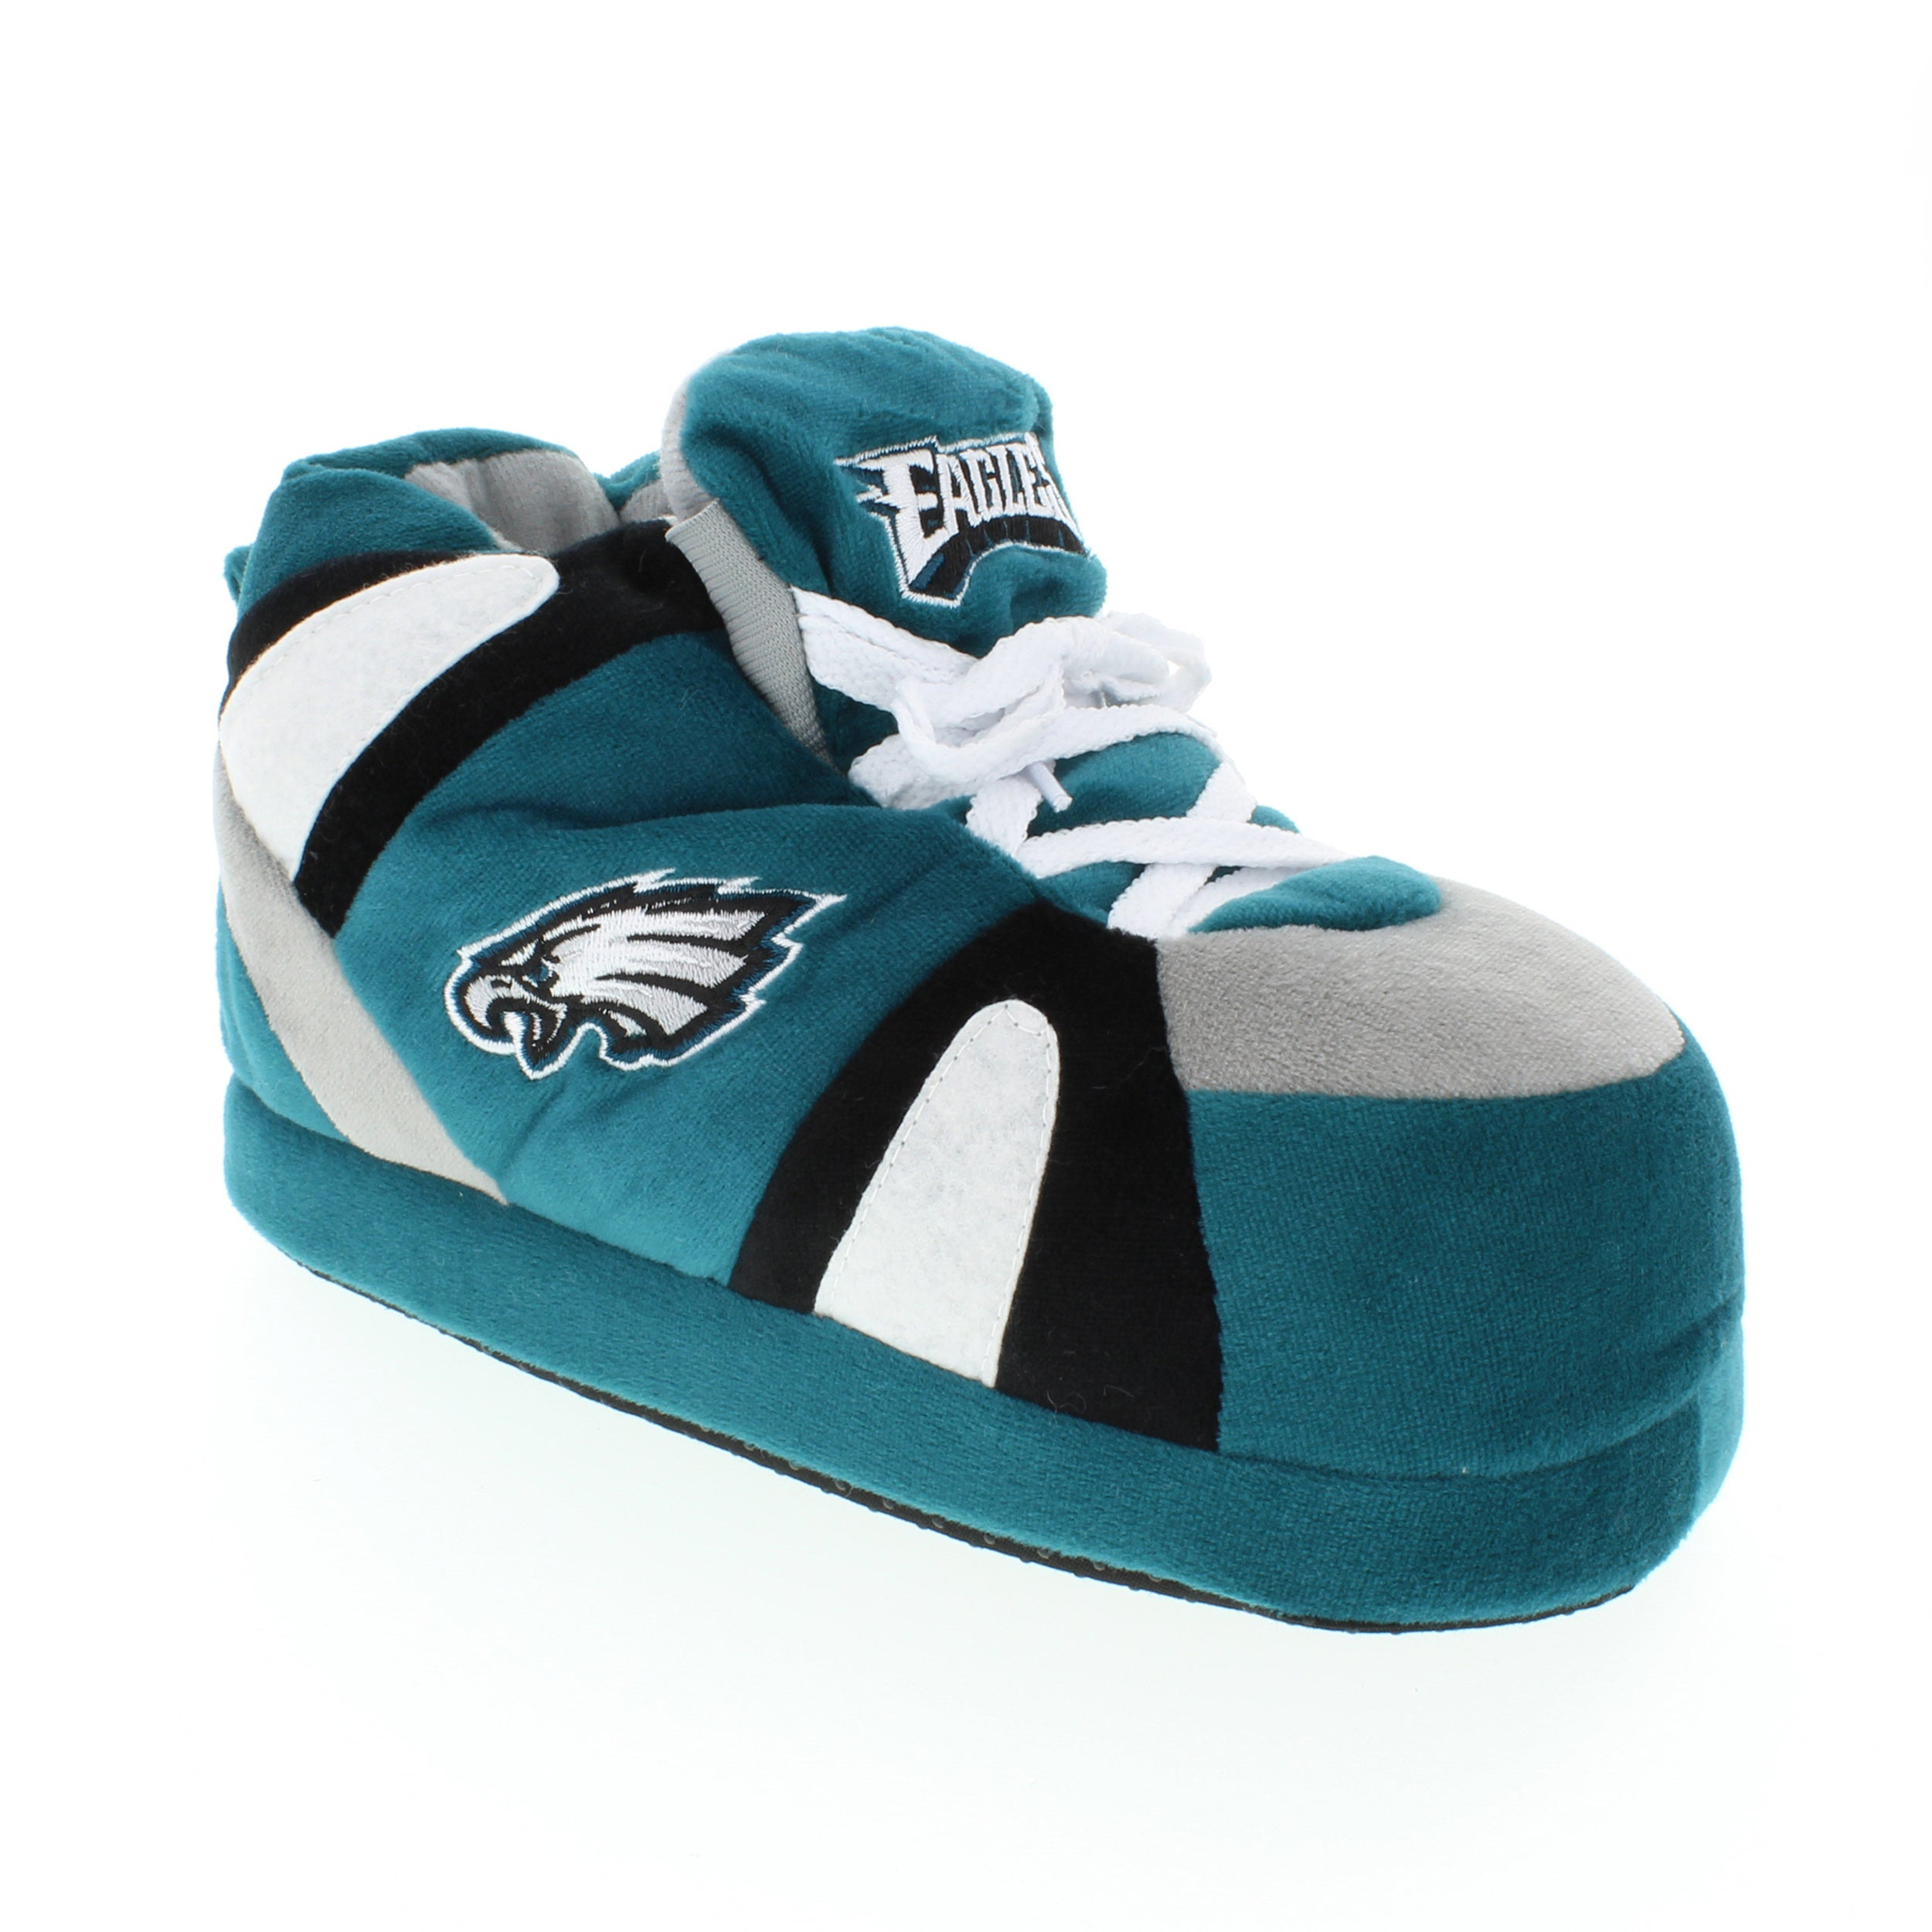 ce1727a63428 Shop Philadelphia Eagles Unisex Sneaker Slippers - Free Shipping On ...